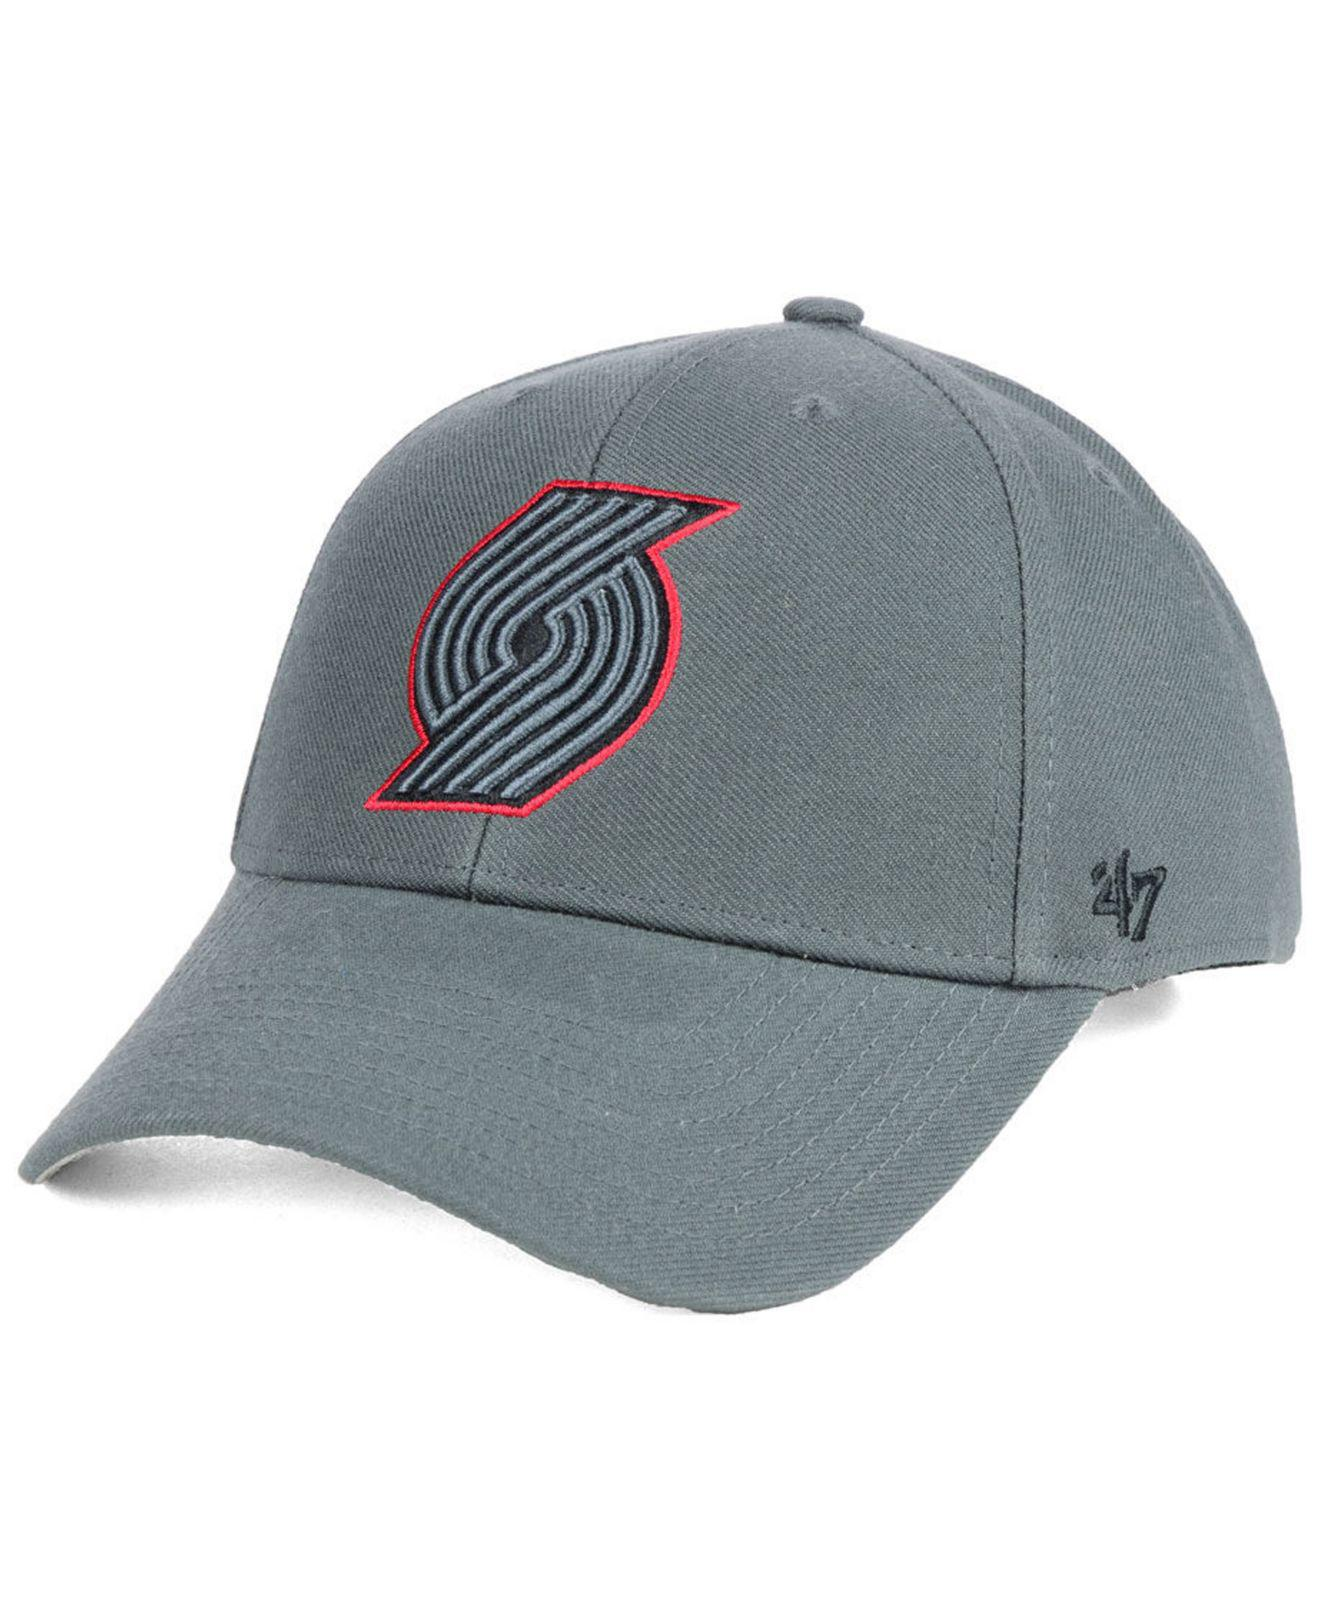 new product 9889d e0115 ... hot lyst 47 brand portland trail blazers charcoal pop mvp cap in gray  105c4 2ae03